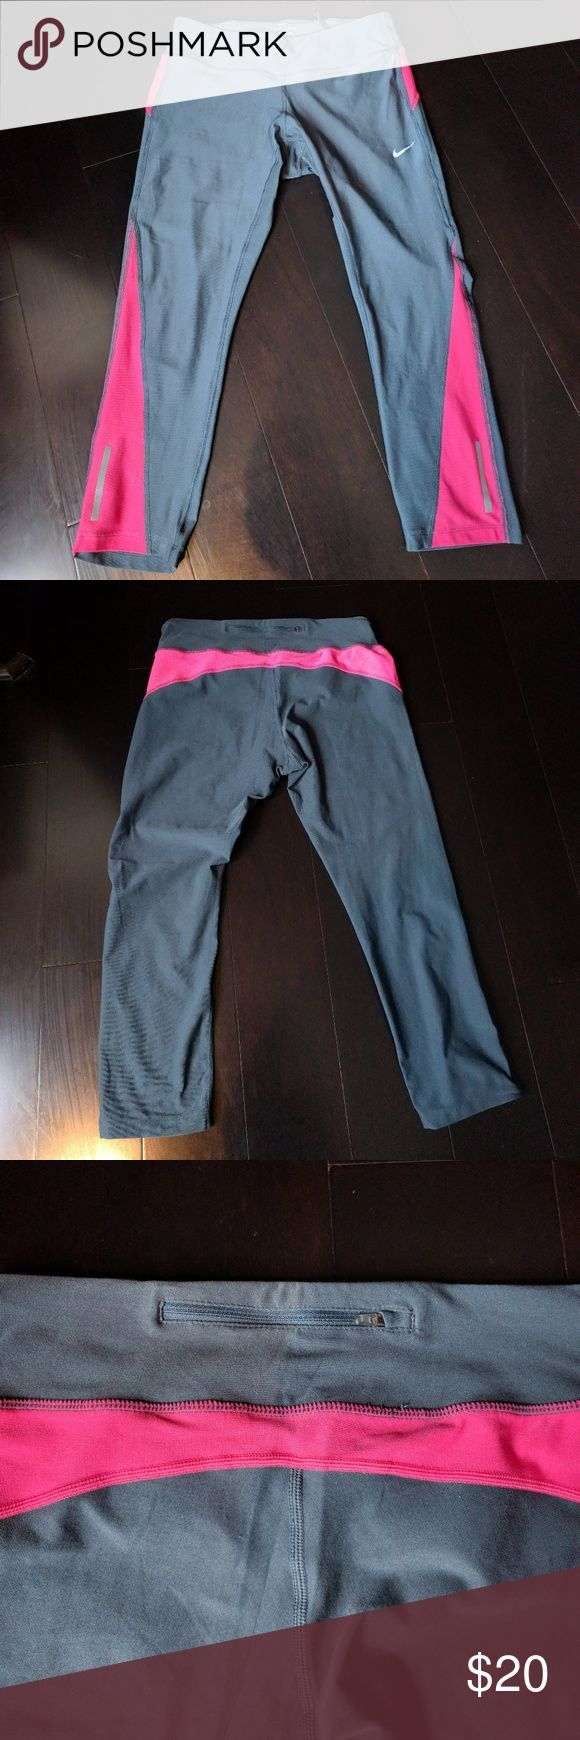 Nike Running Tights Super soft, DriFit leggings from the Nike Running line. Crop (below calf) length, drawstring, zippered key pocket, flat-lock seams, reflective strip for safety. Great condition. Nike Pants Leggings